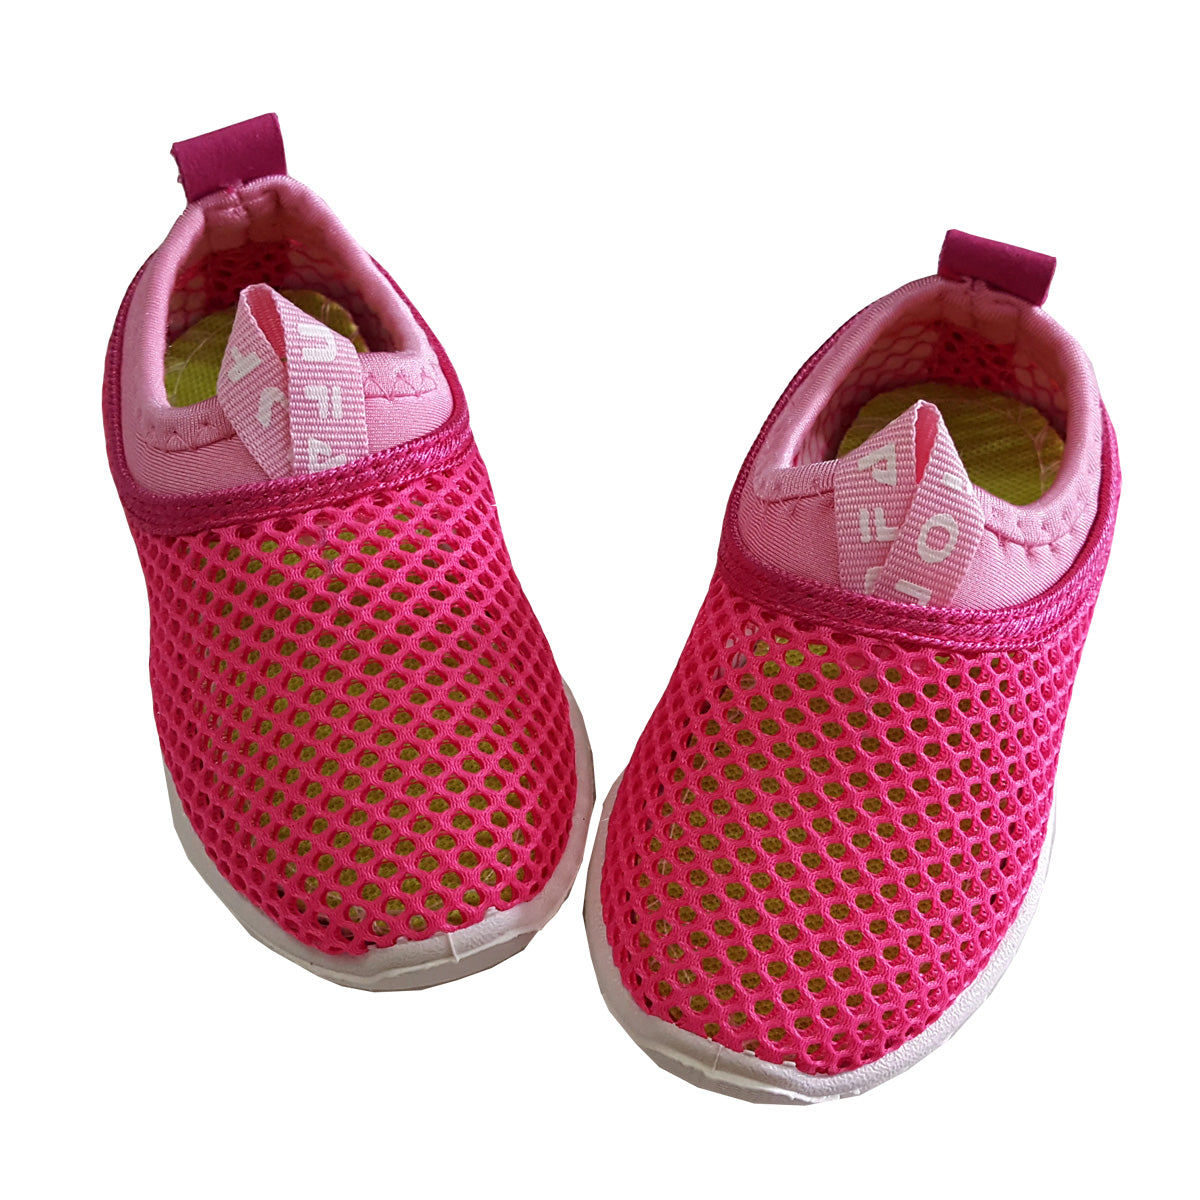 S170 Sports Mesh Pink Offer